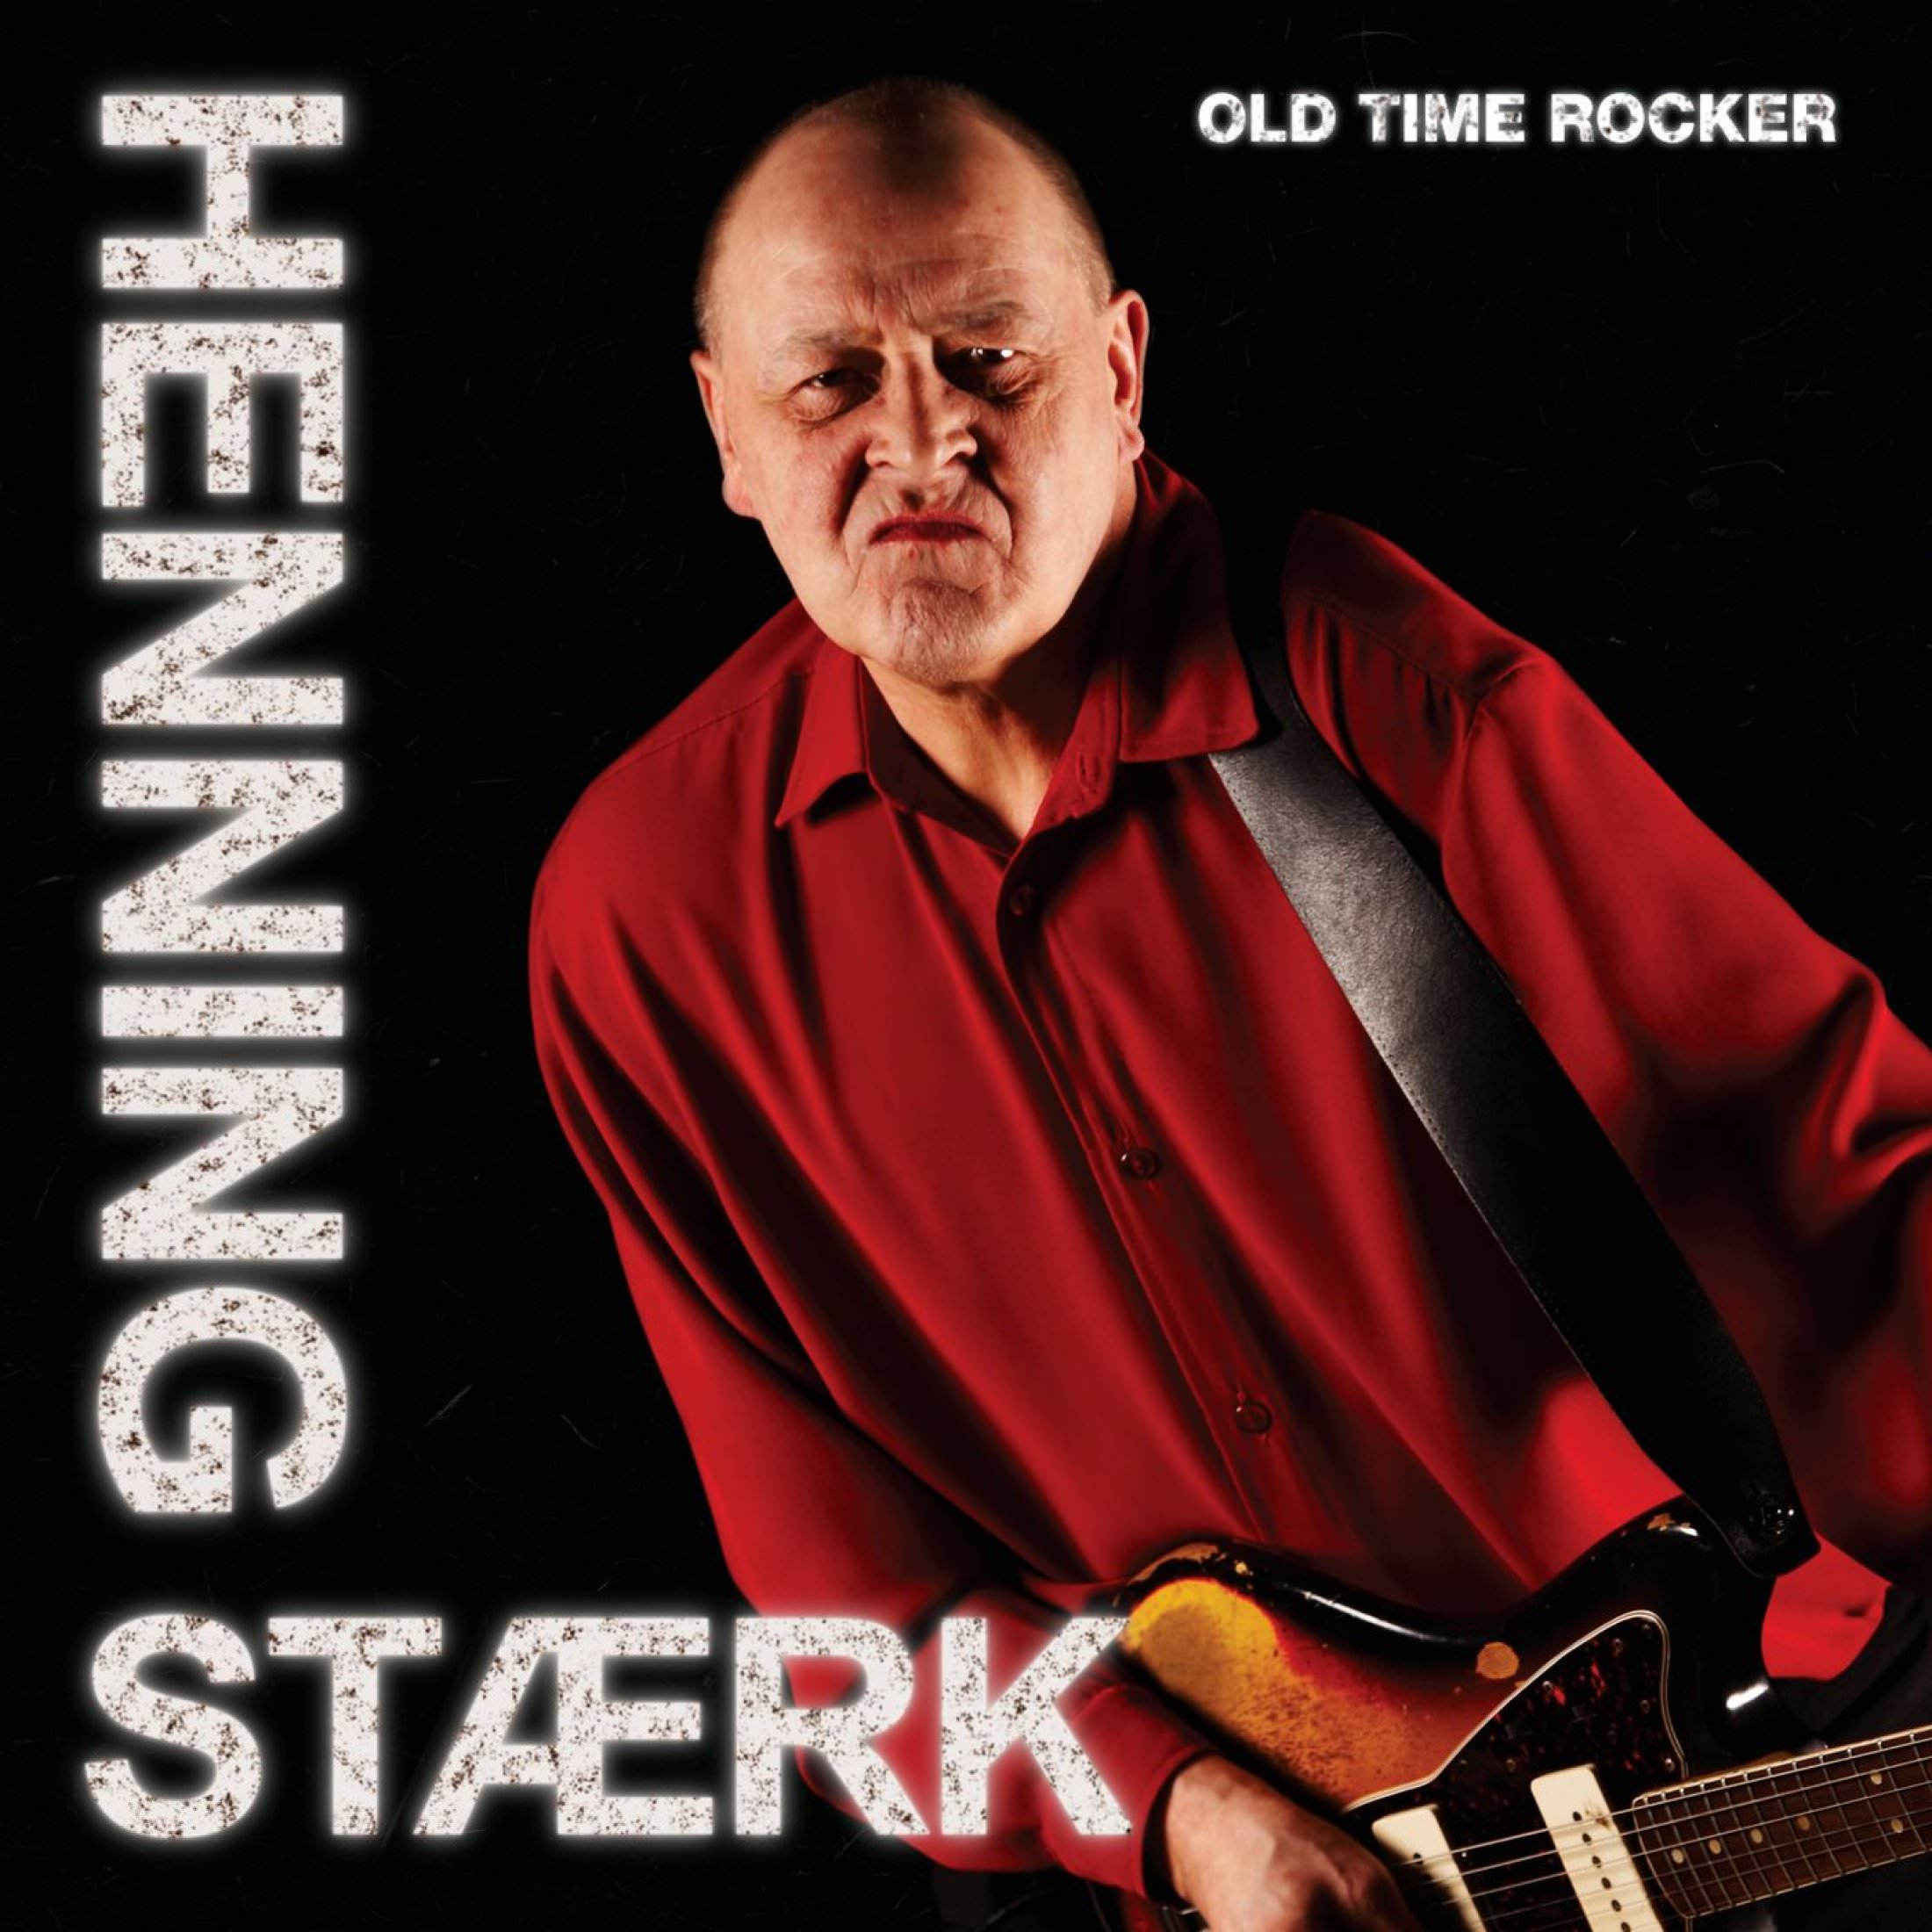 Henning Stærk - Old Time Rocker